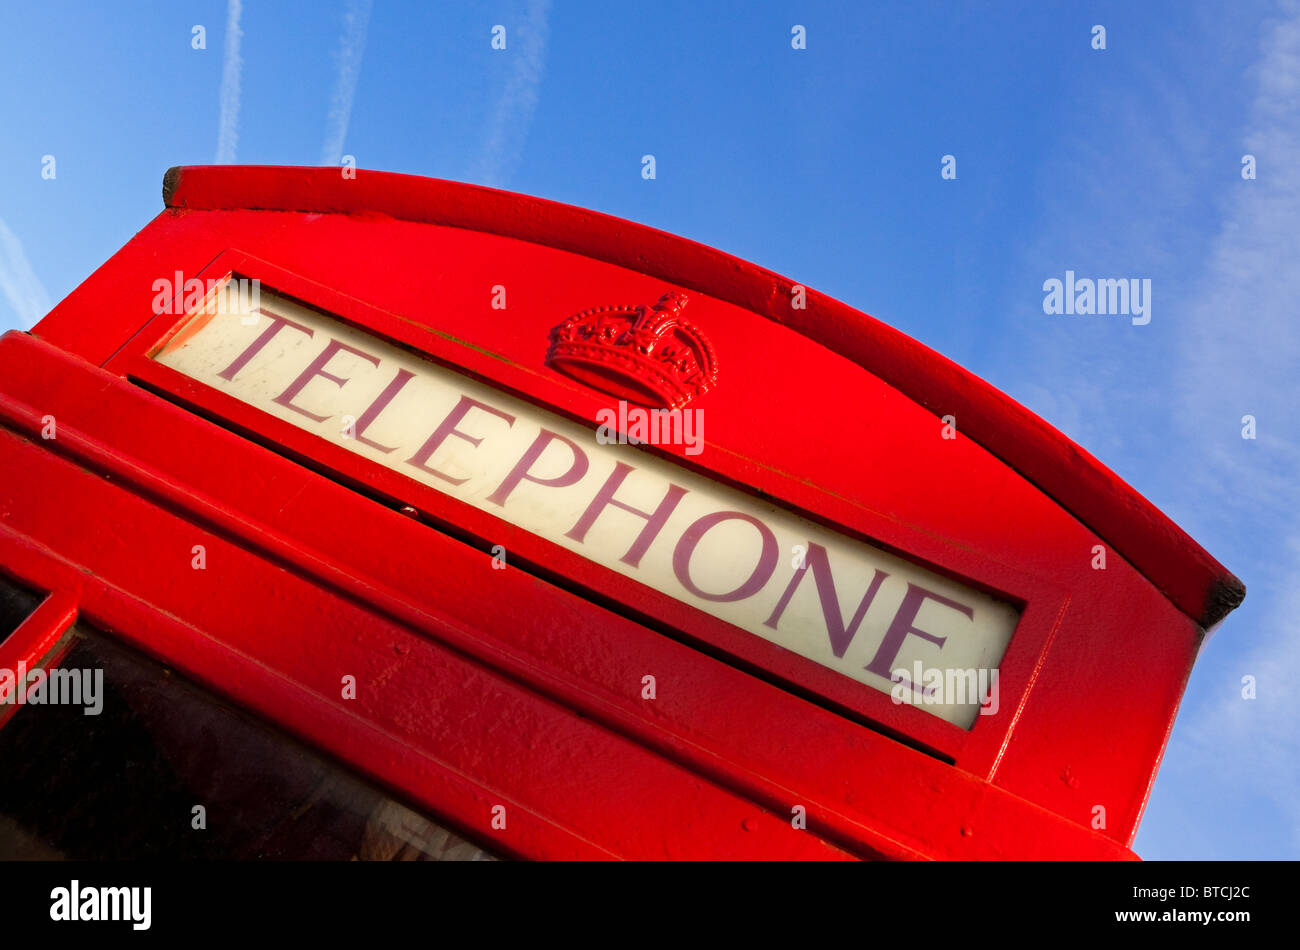 Detail of red K6 UK telephone box designed by Sir Giles Gilbert Scott and still found widely used across the United - Stock Image